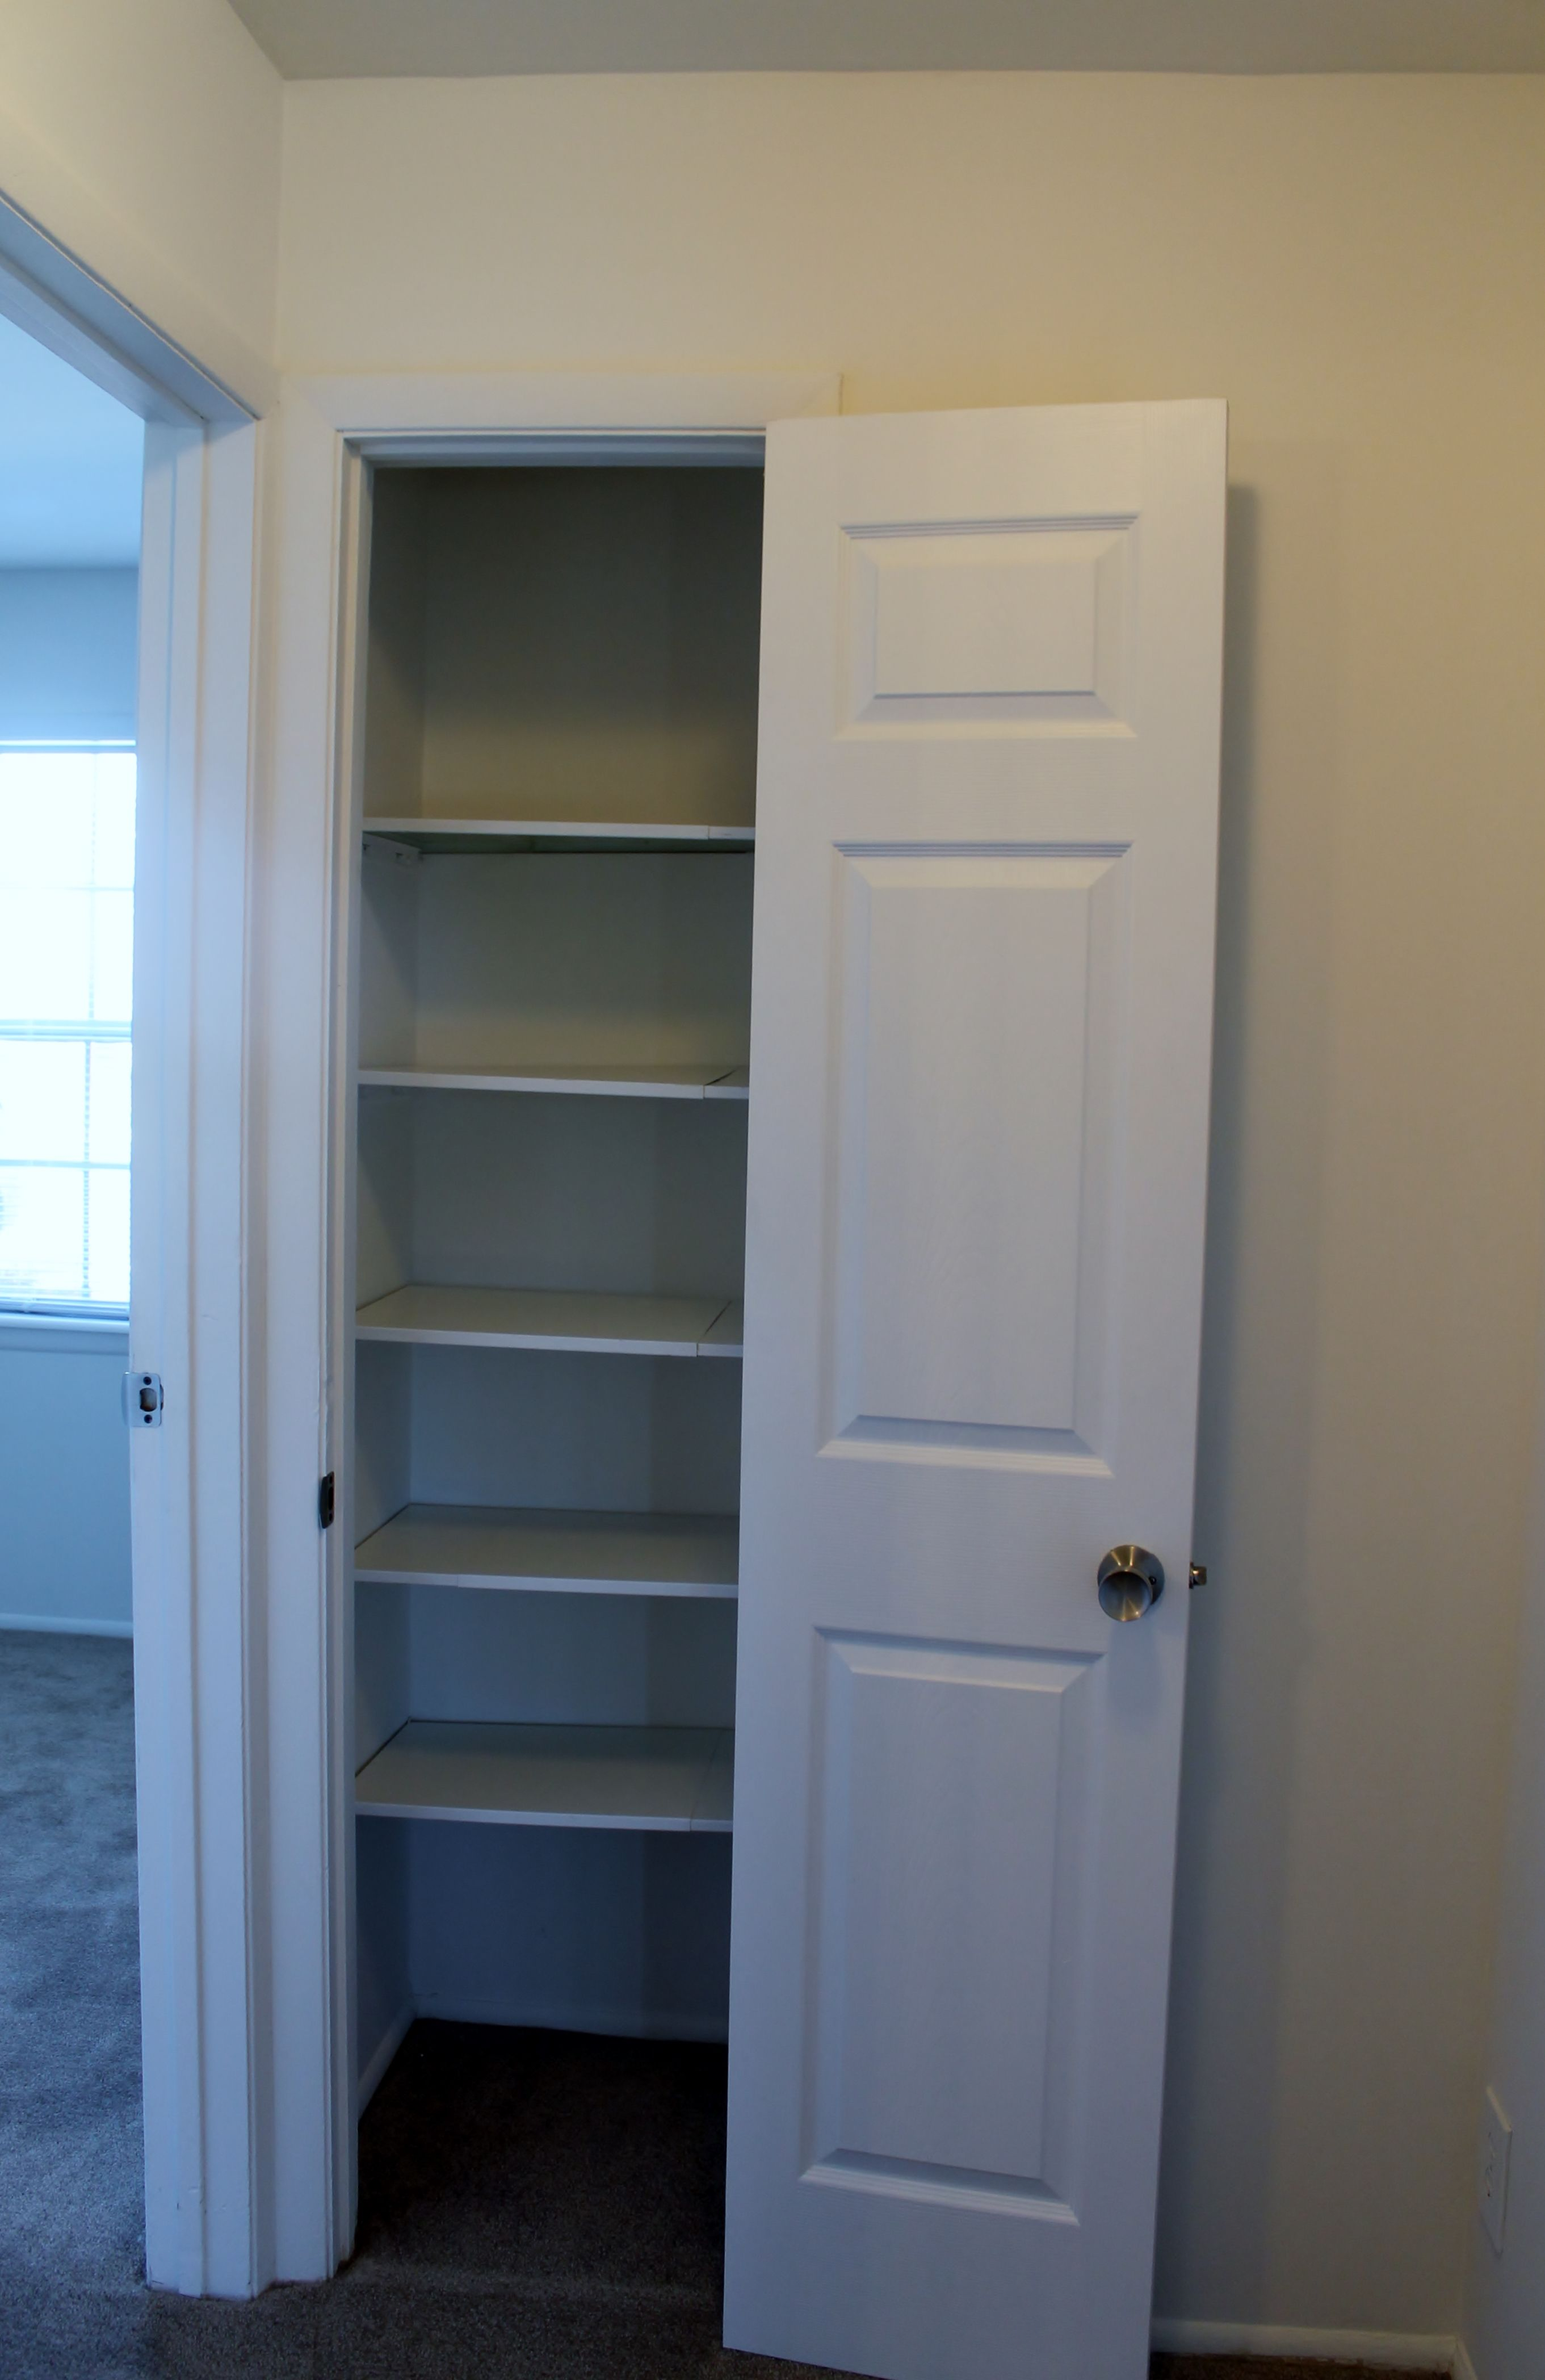 The obvious linen closet with sturdy shelves and white paneled doors The not so obvious there are TWO linen hall closets and the second one is twice the